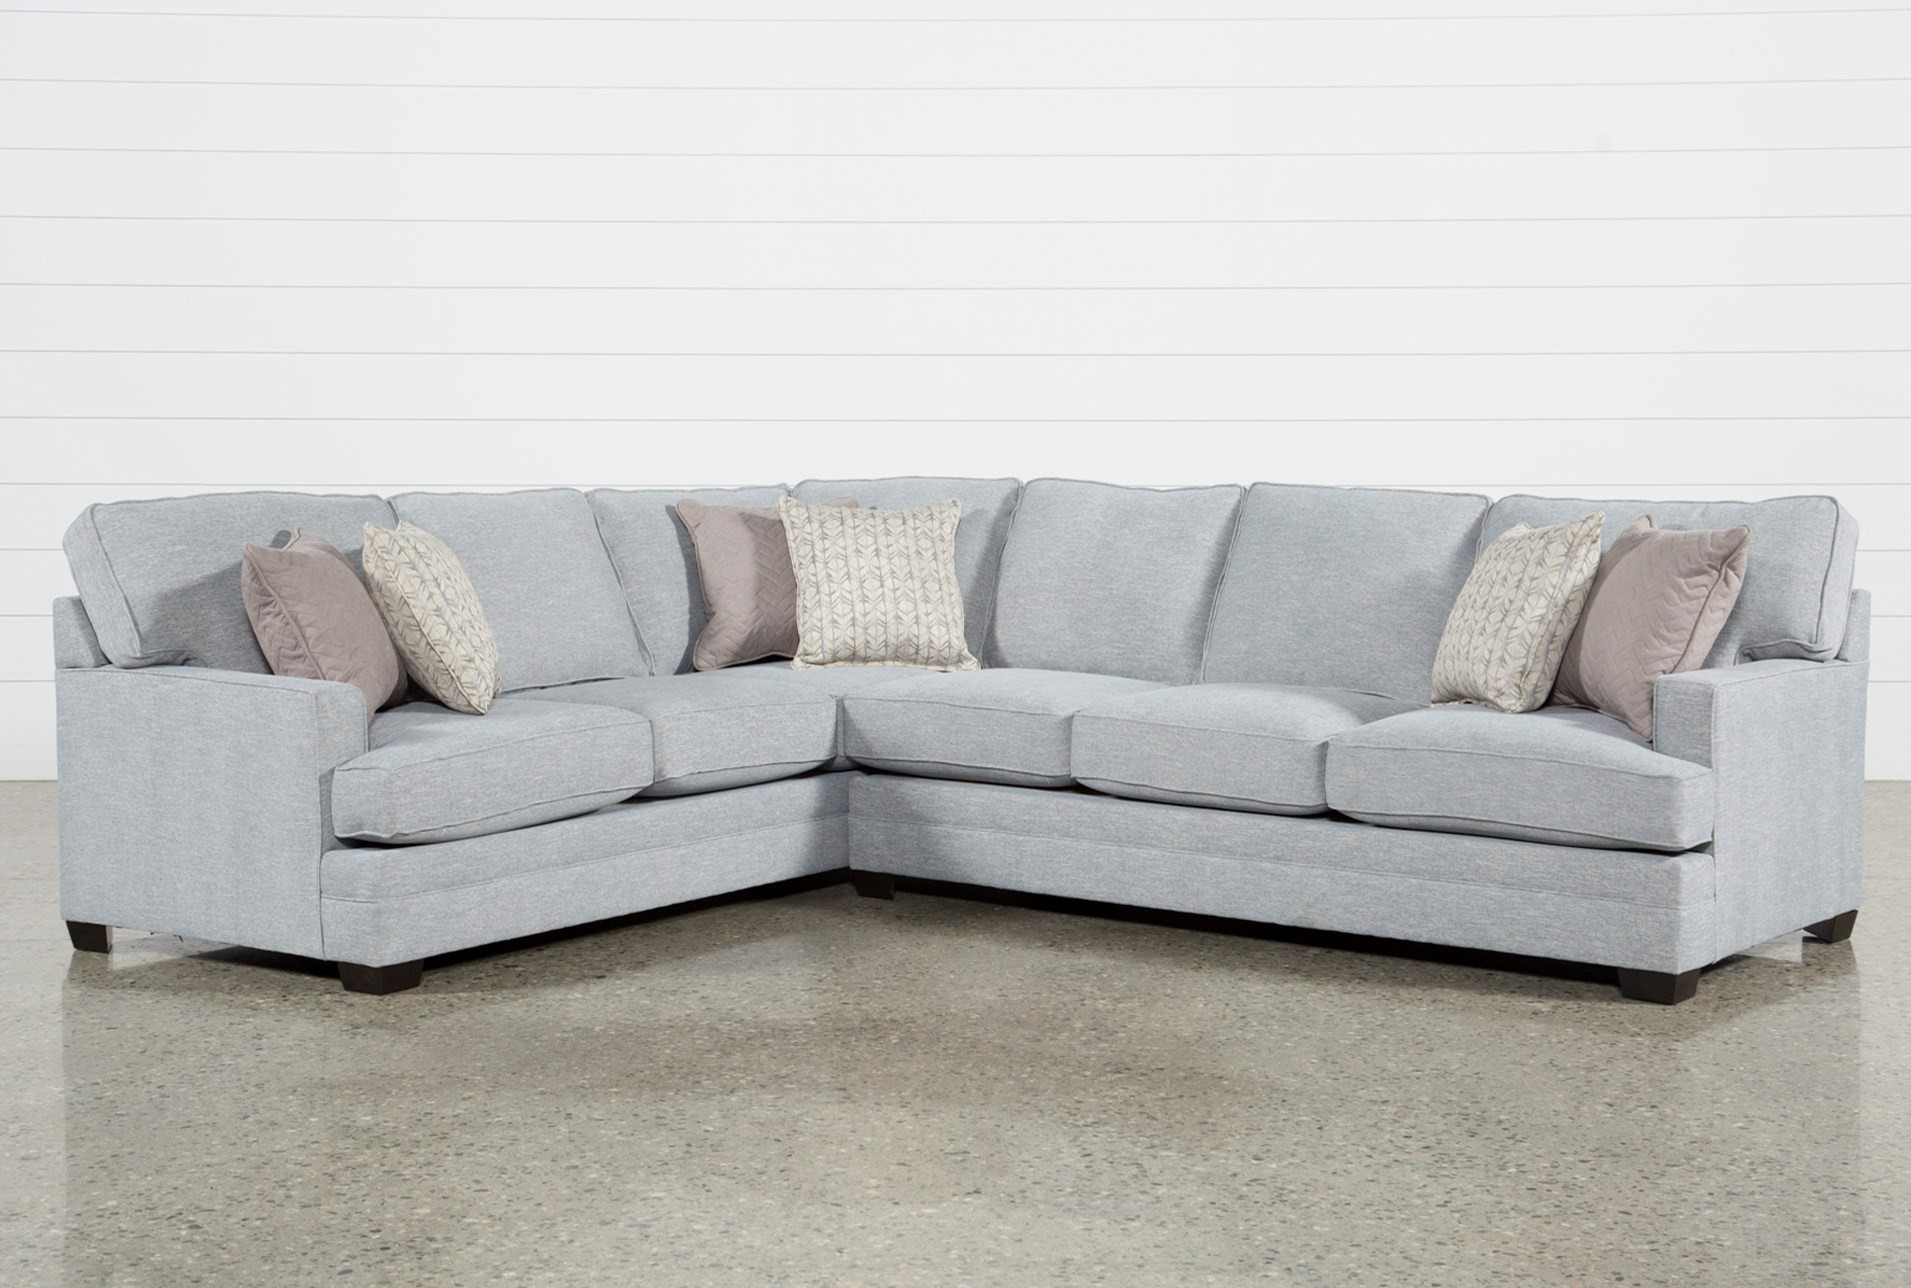 Living Spaces Sectional Cosmos Grey 2 Piece W Raf Chaise 206402 0 with Cosmos Grey 2 Piece Sectionals With Laf Chaise (Image 15 of 30)